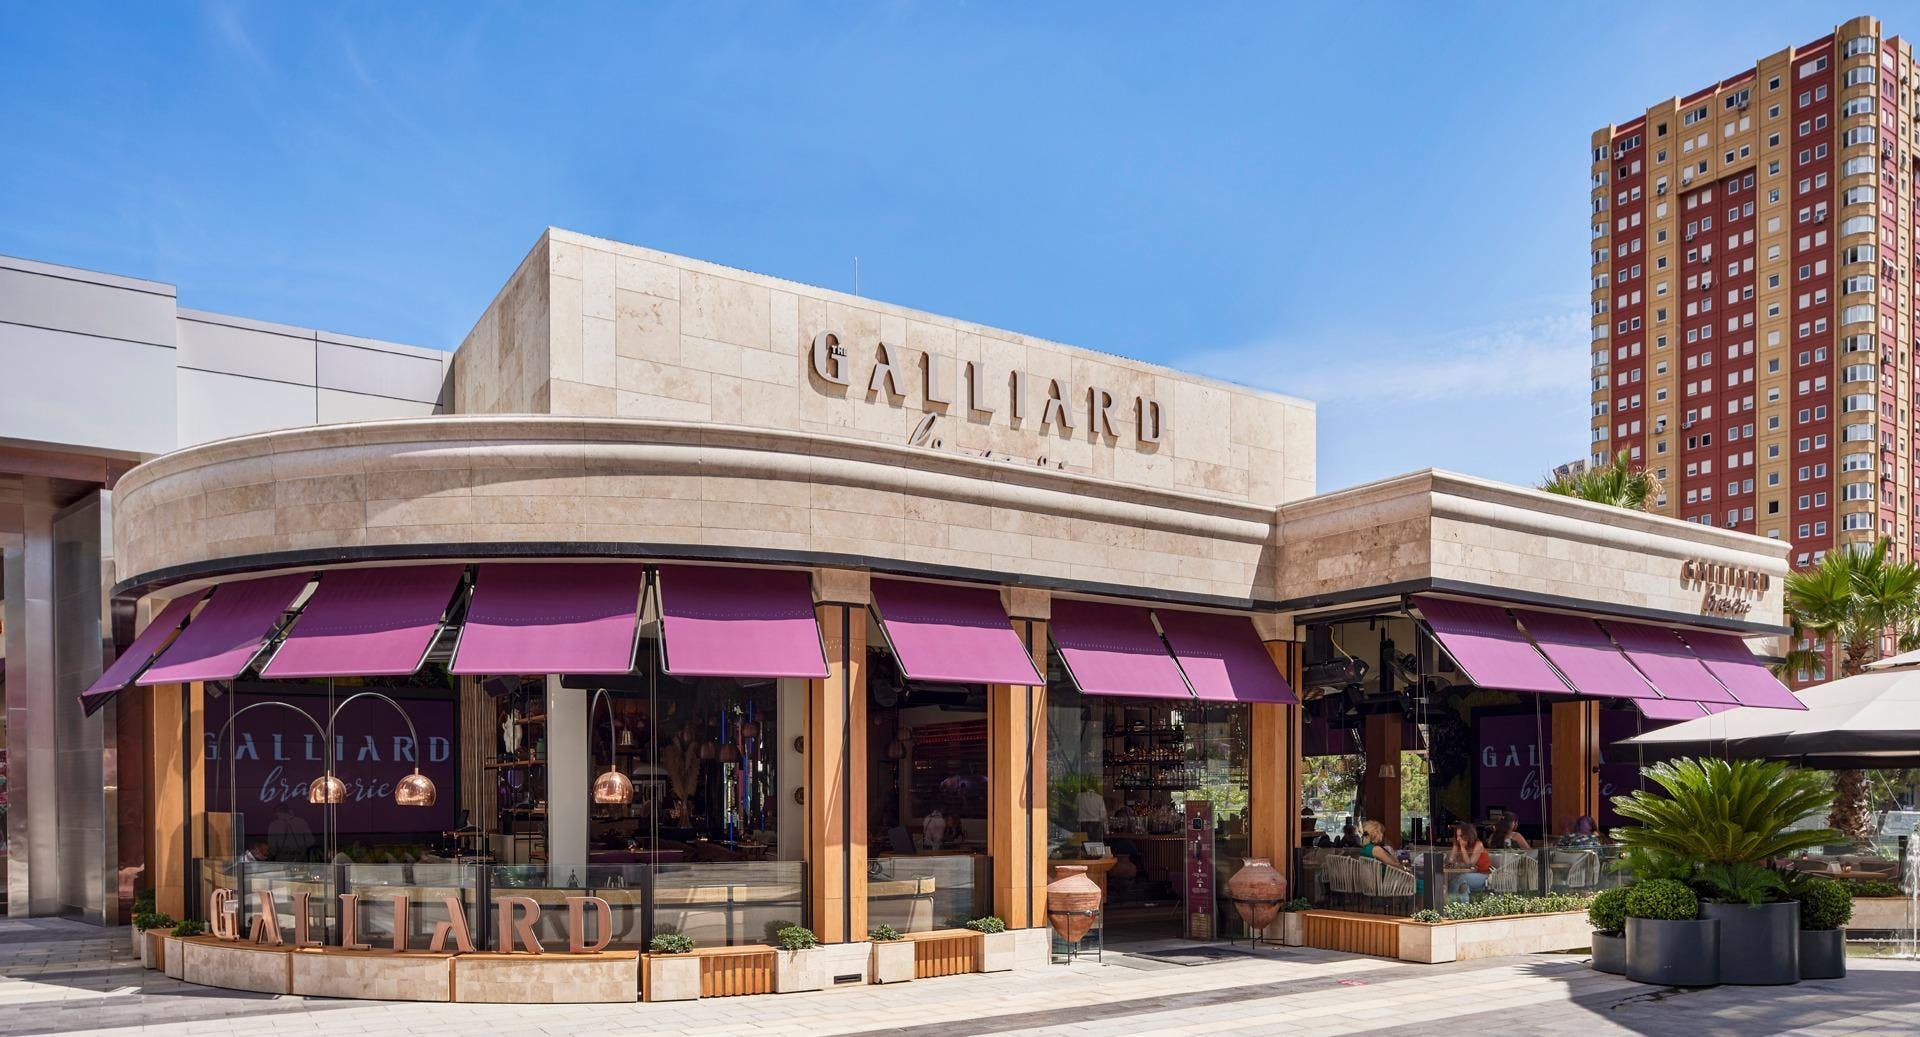 The Galliard Metropol